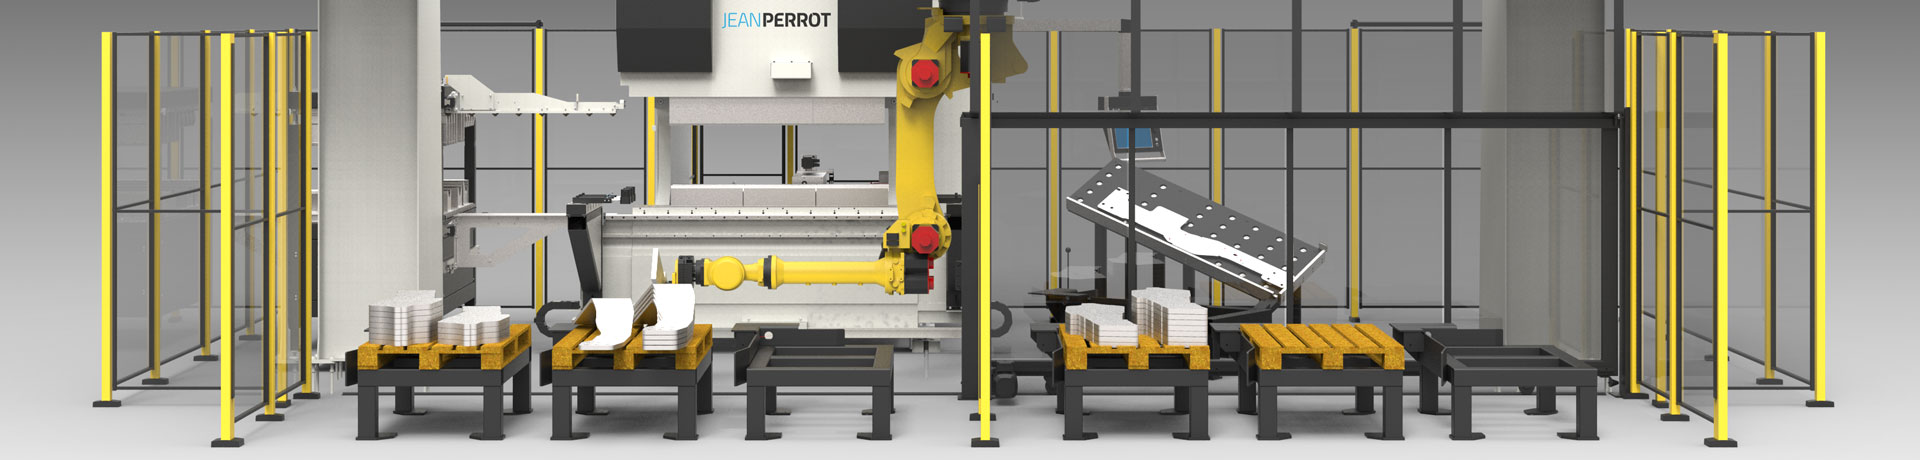 We offer custom solutions to answer each of our clients' specific needs. Our automated bending cellsinclude press brake MANEO Premium LCS, robotic arms, accessories & additional modules to fit your needs.